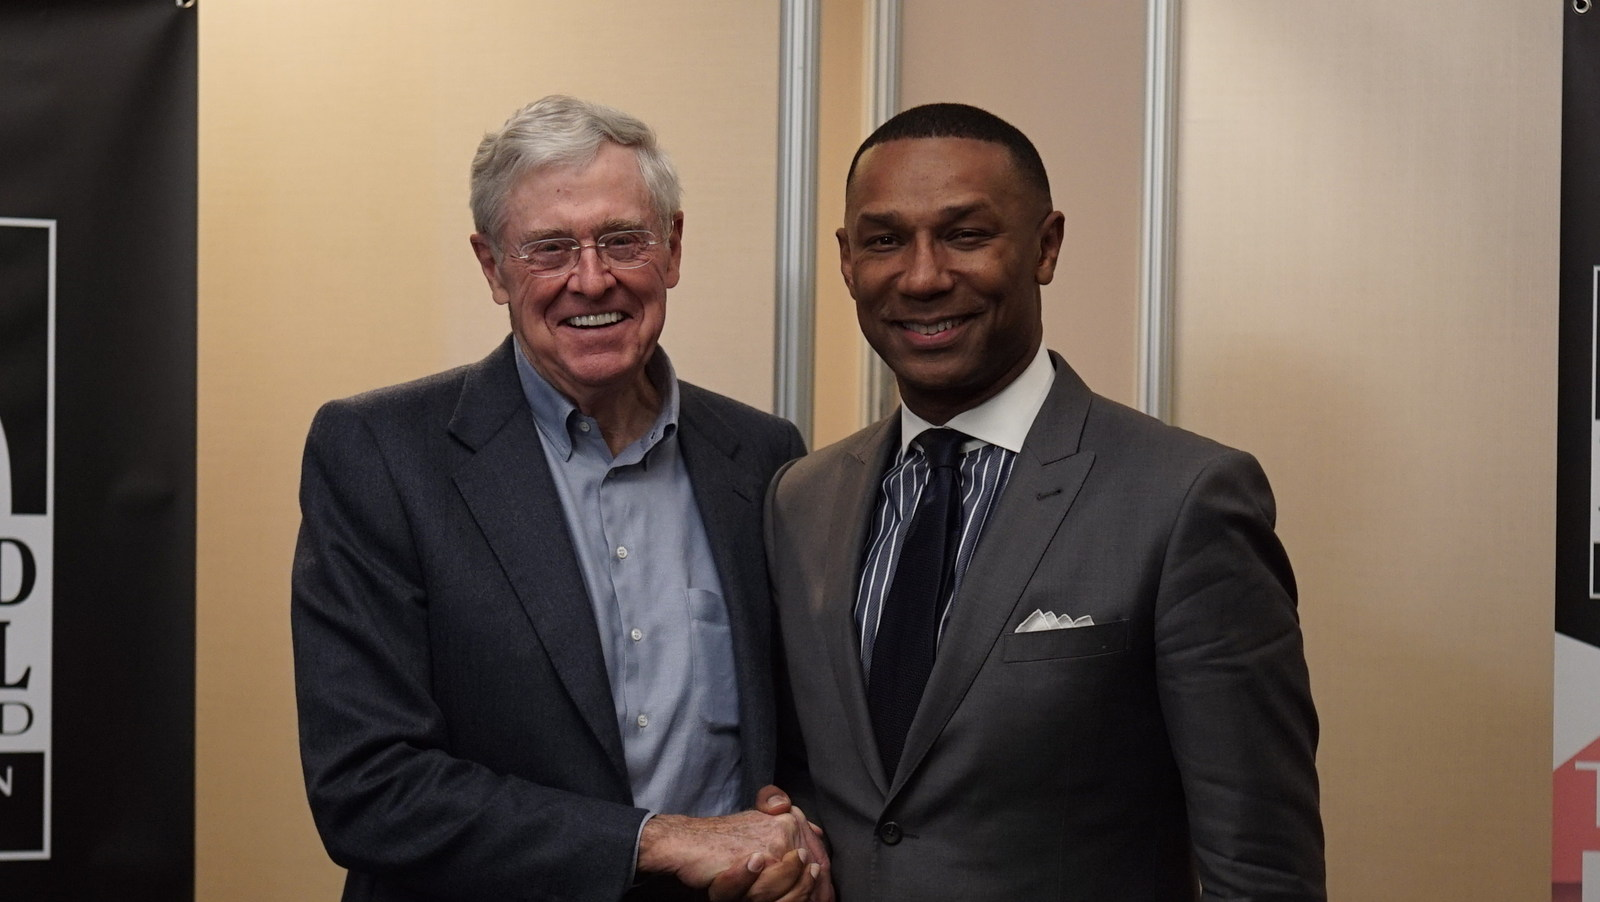 Charles G. Koch, chairman of the board and CEO of Koch Industries Inc., with Johnny C. Taylor Jr., president & CEO of the Thurgood Marshall College Fund (TMCF) at the TMCF 2016 Leadership Institute.